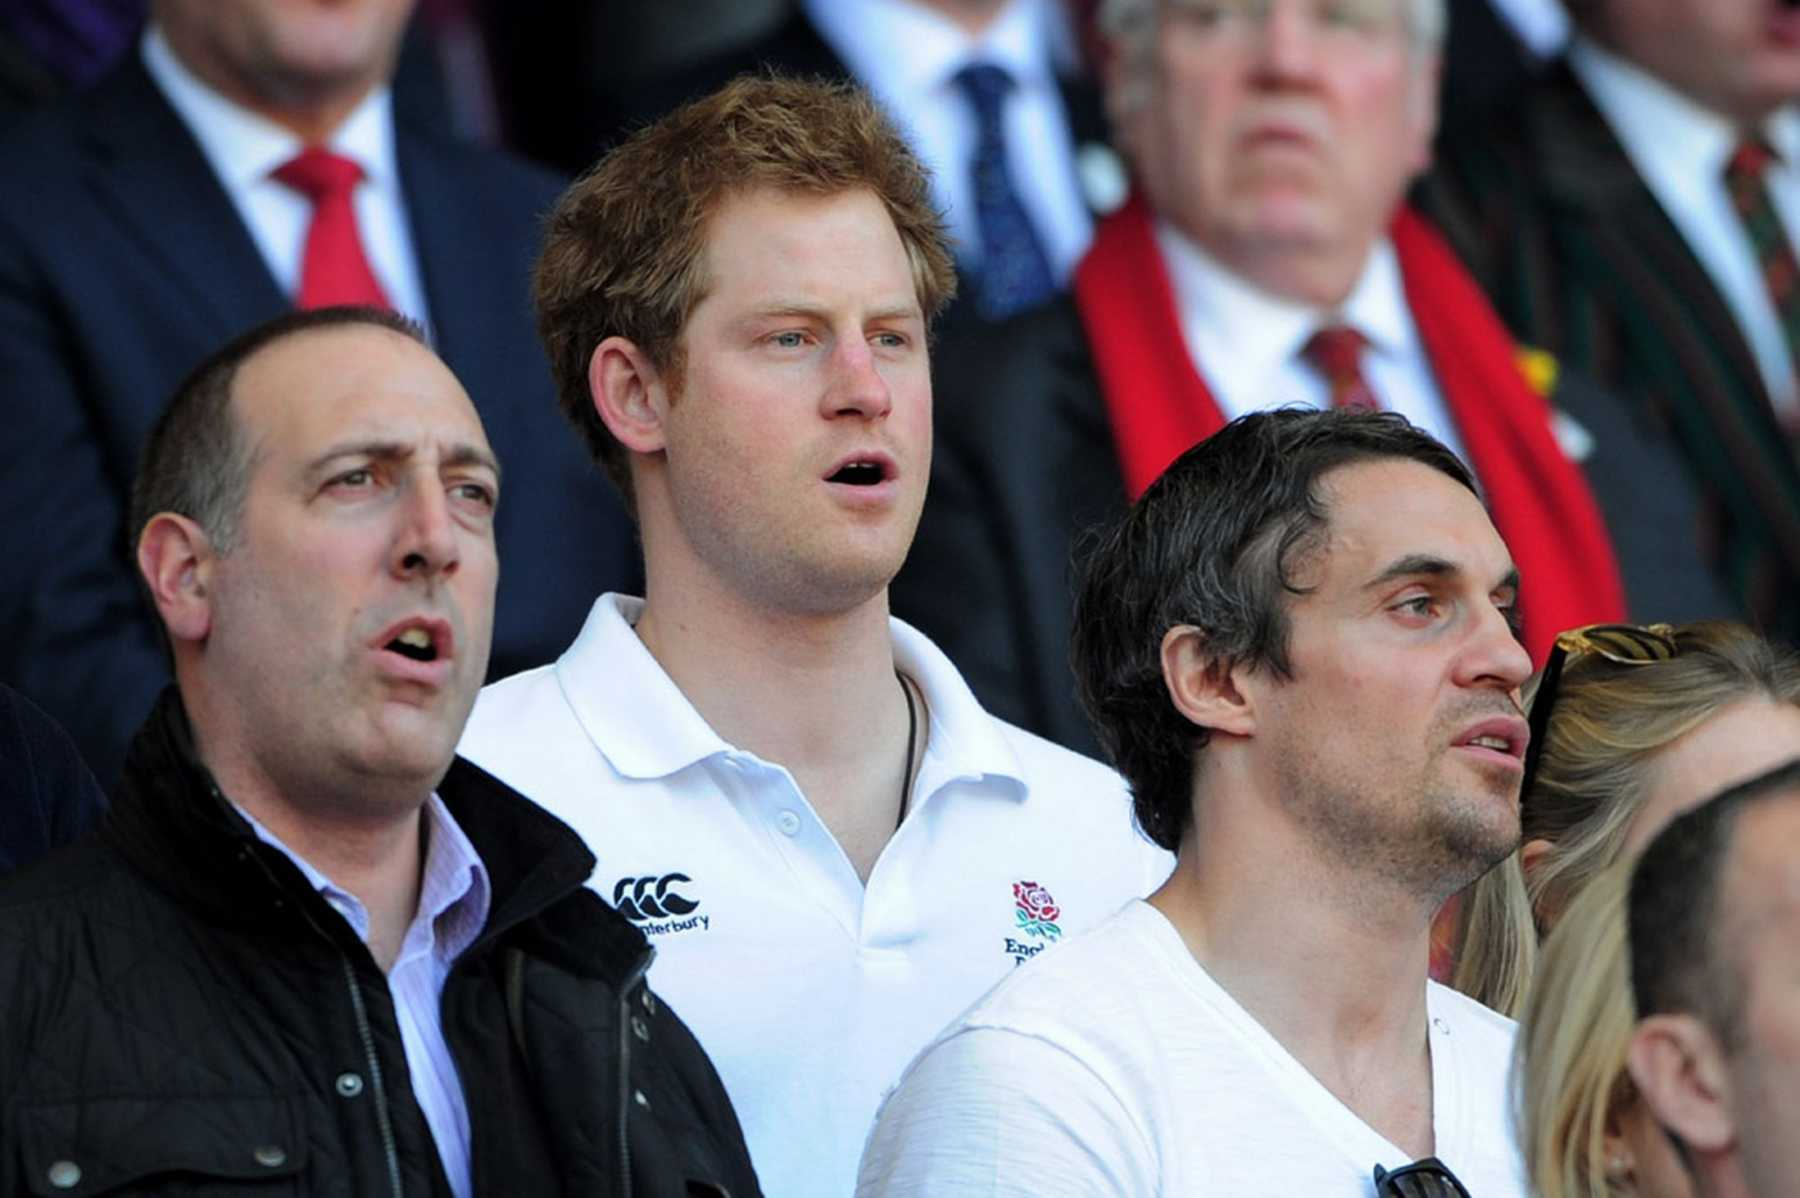 Prince Harry And Cressida Bonas Go Public Attending A Rugby Game